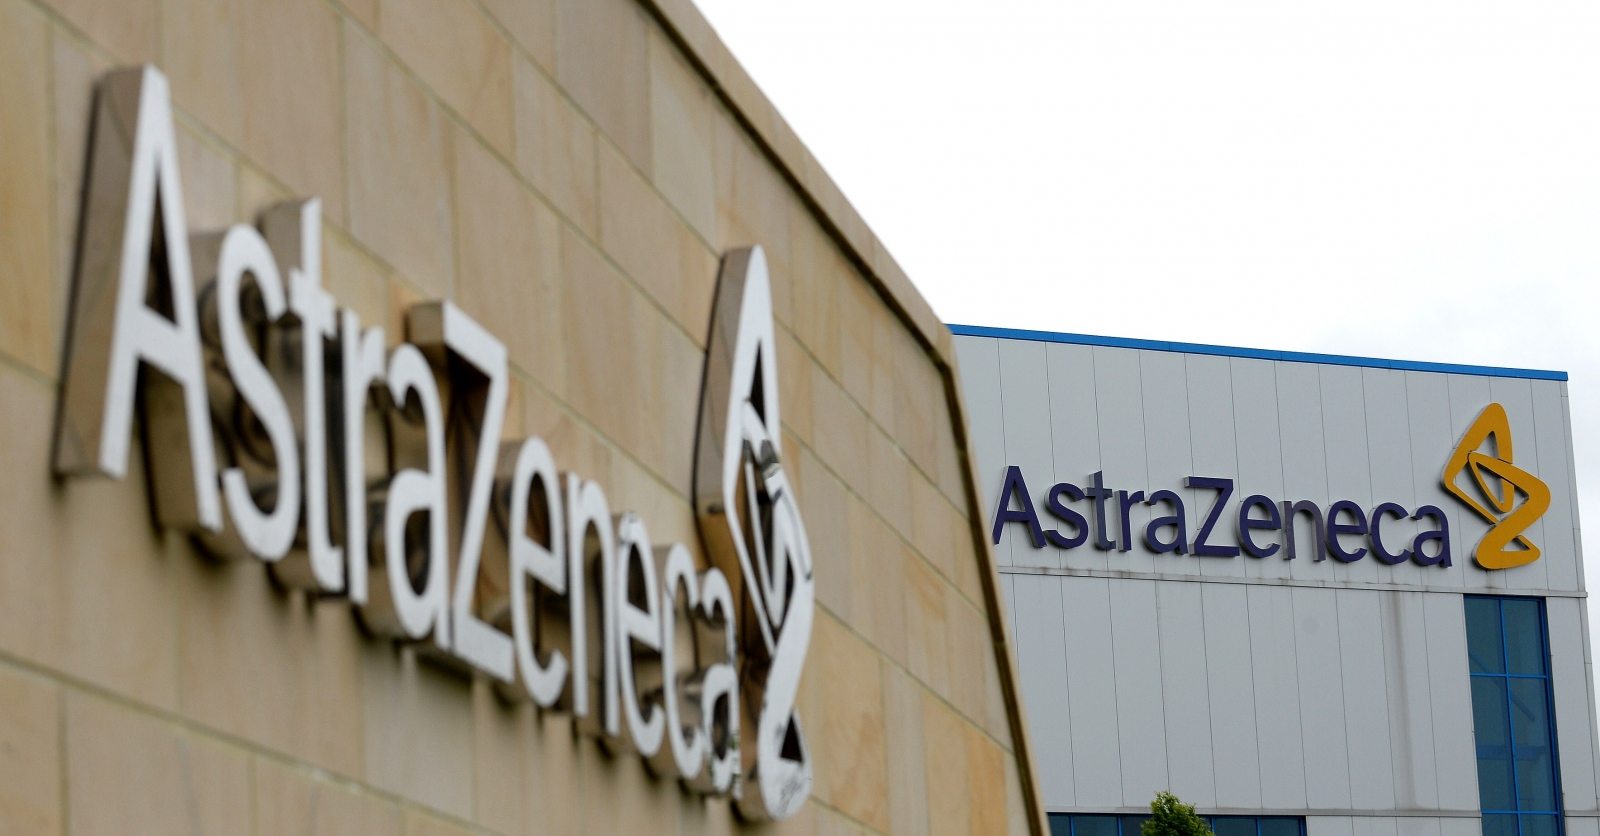 astrazeneca - photo #12